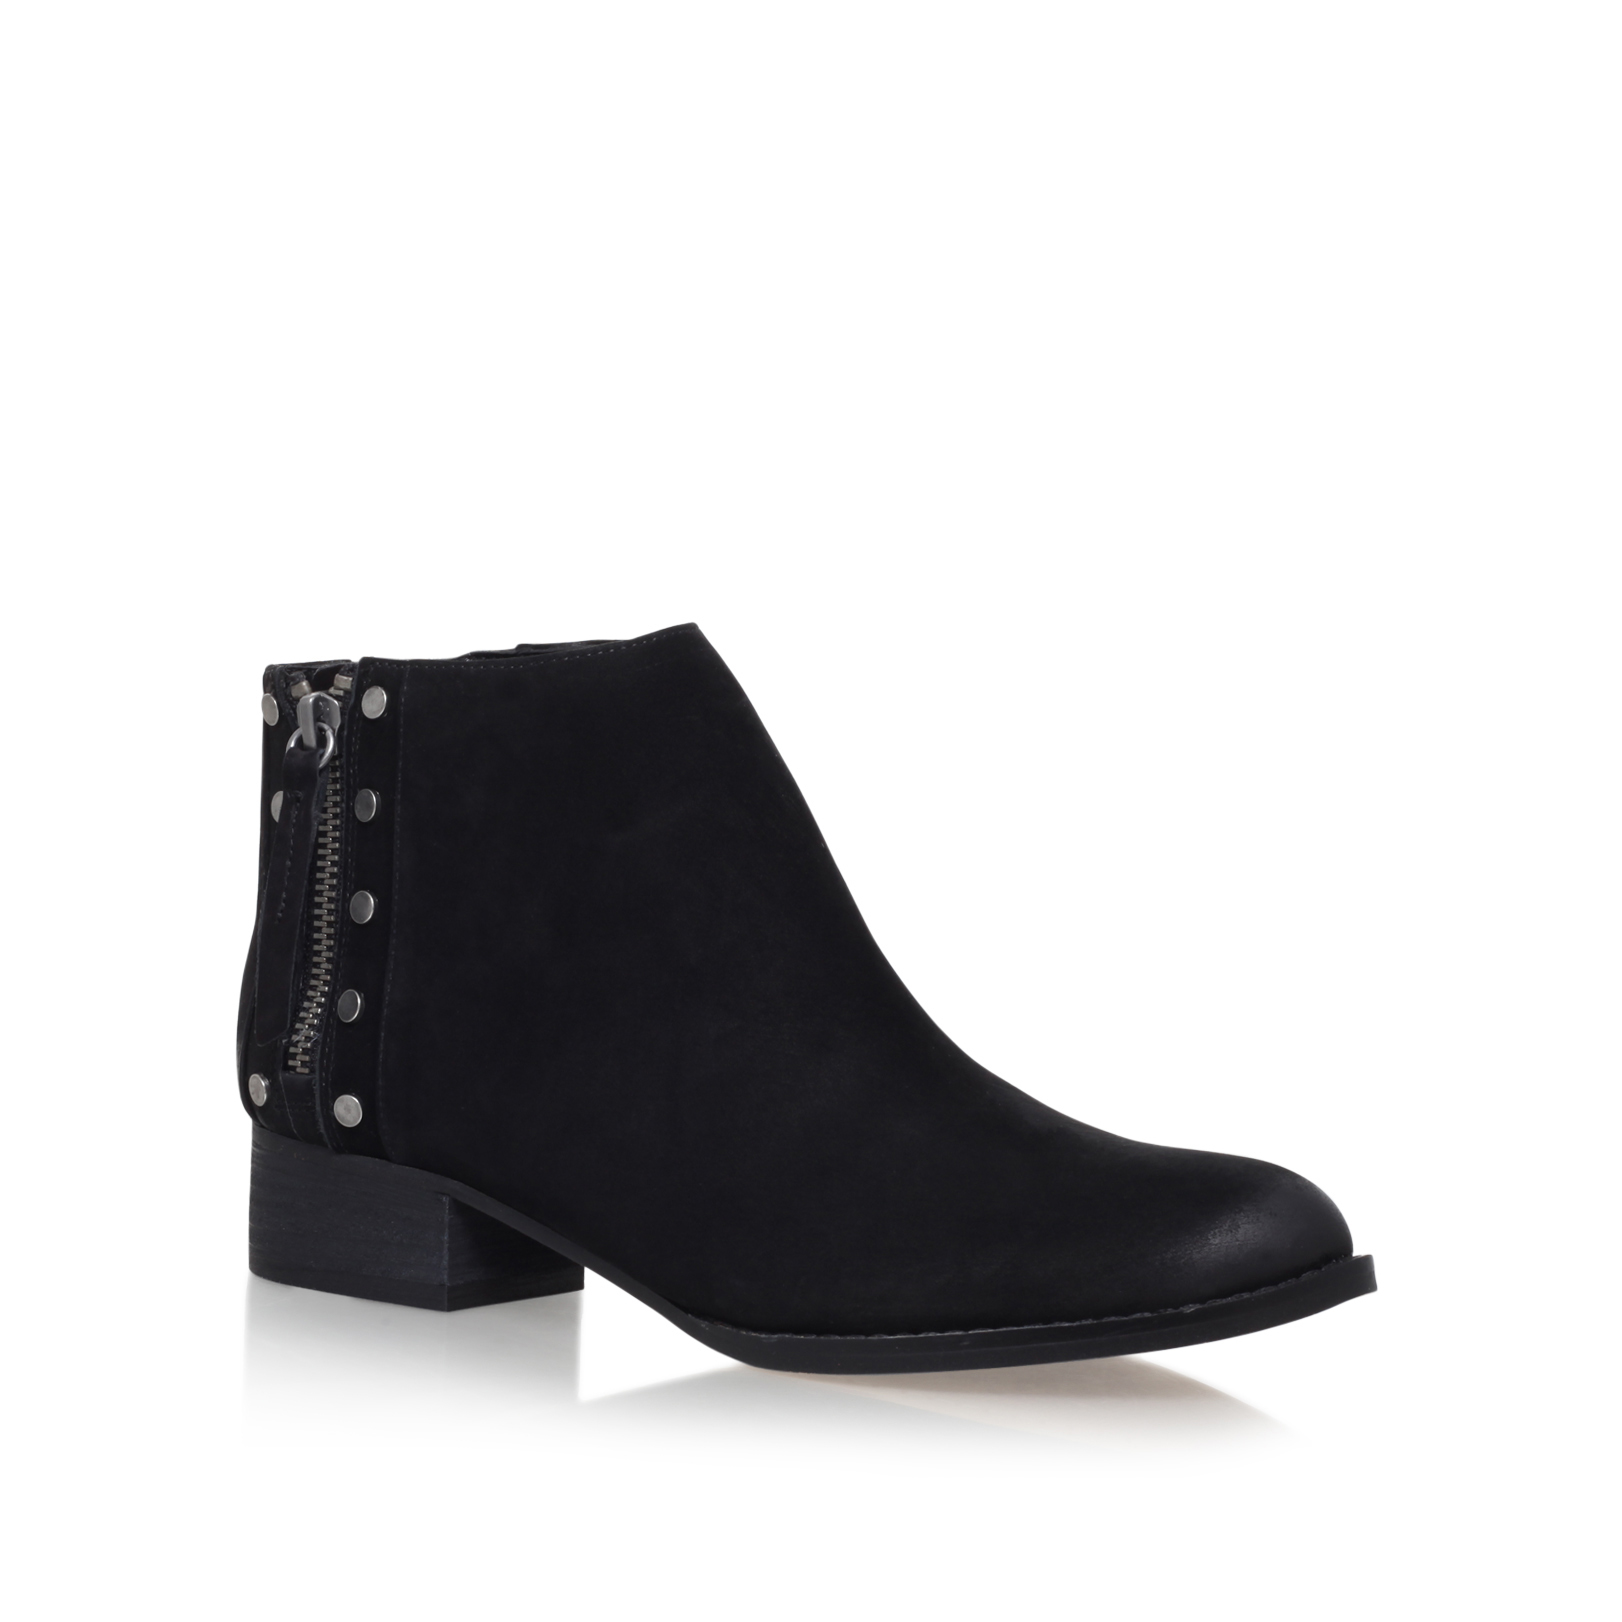 Vince Camuto Catlie High Heel Ankle Boots In Black Lyst